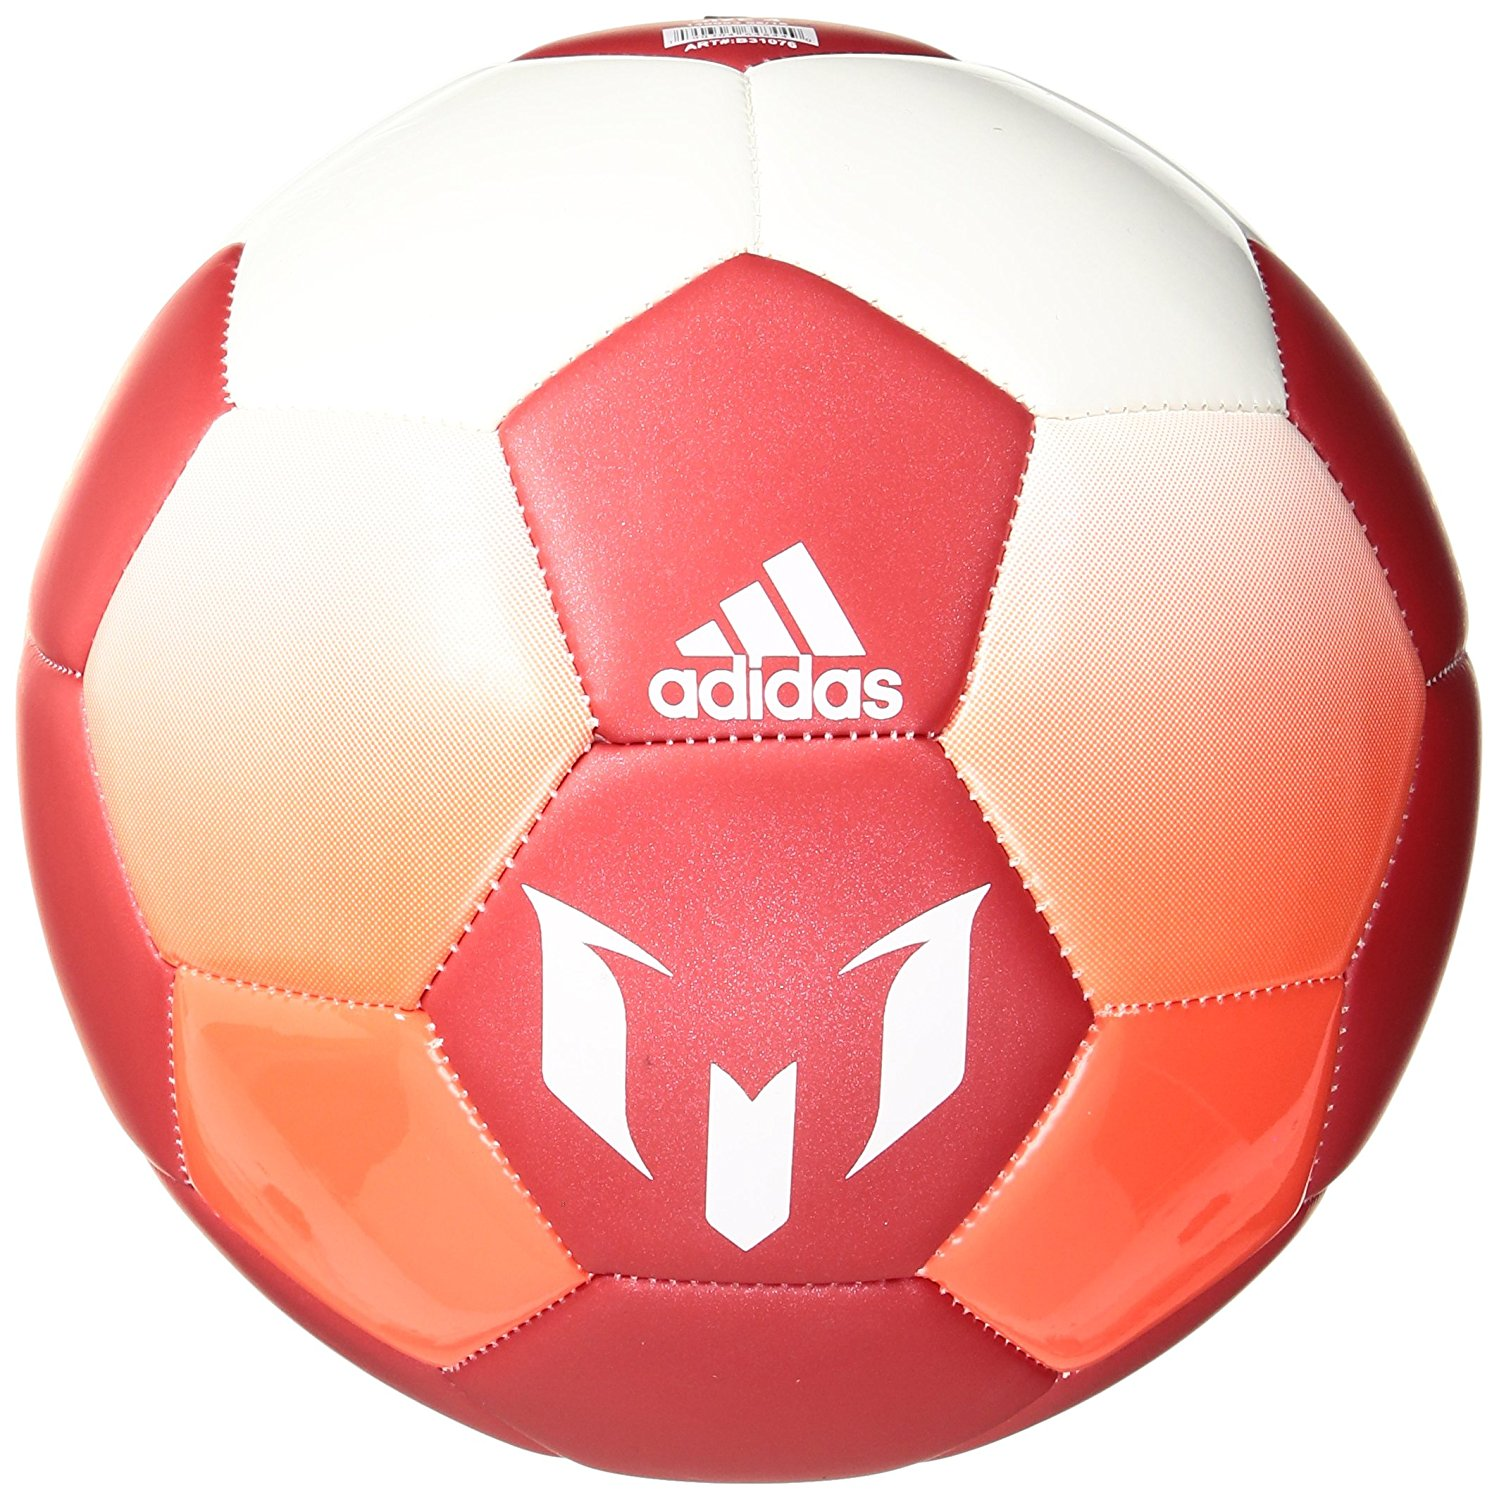 1499x1500 Adidas Messi Soccer Ball Sports Amp Outdoors